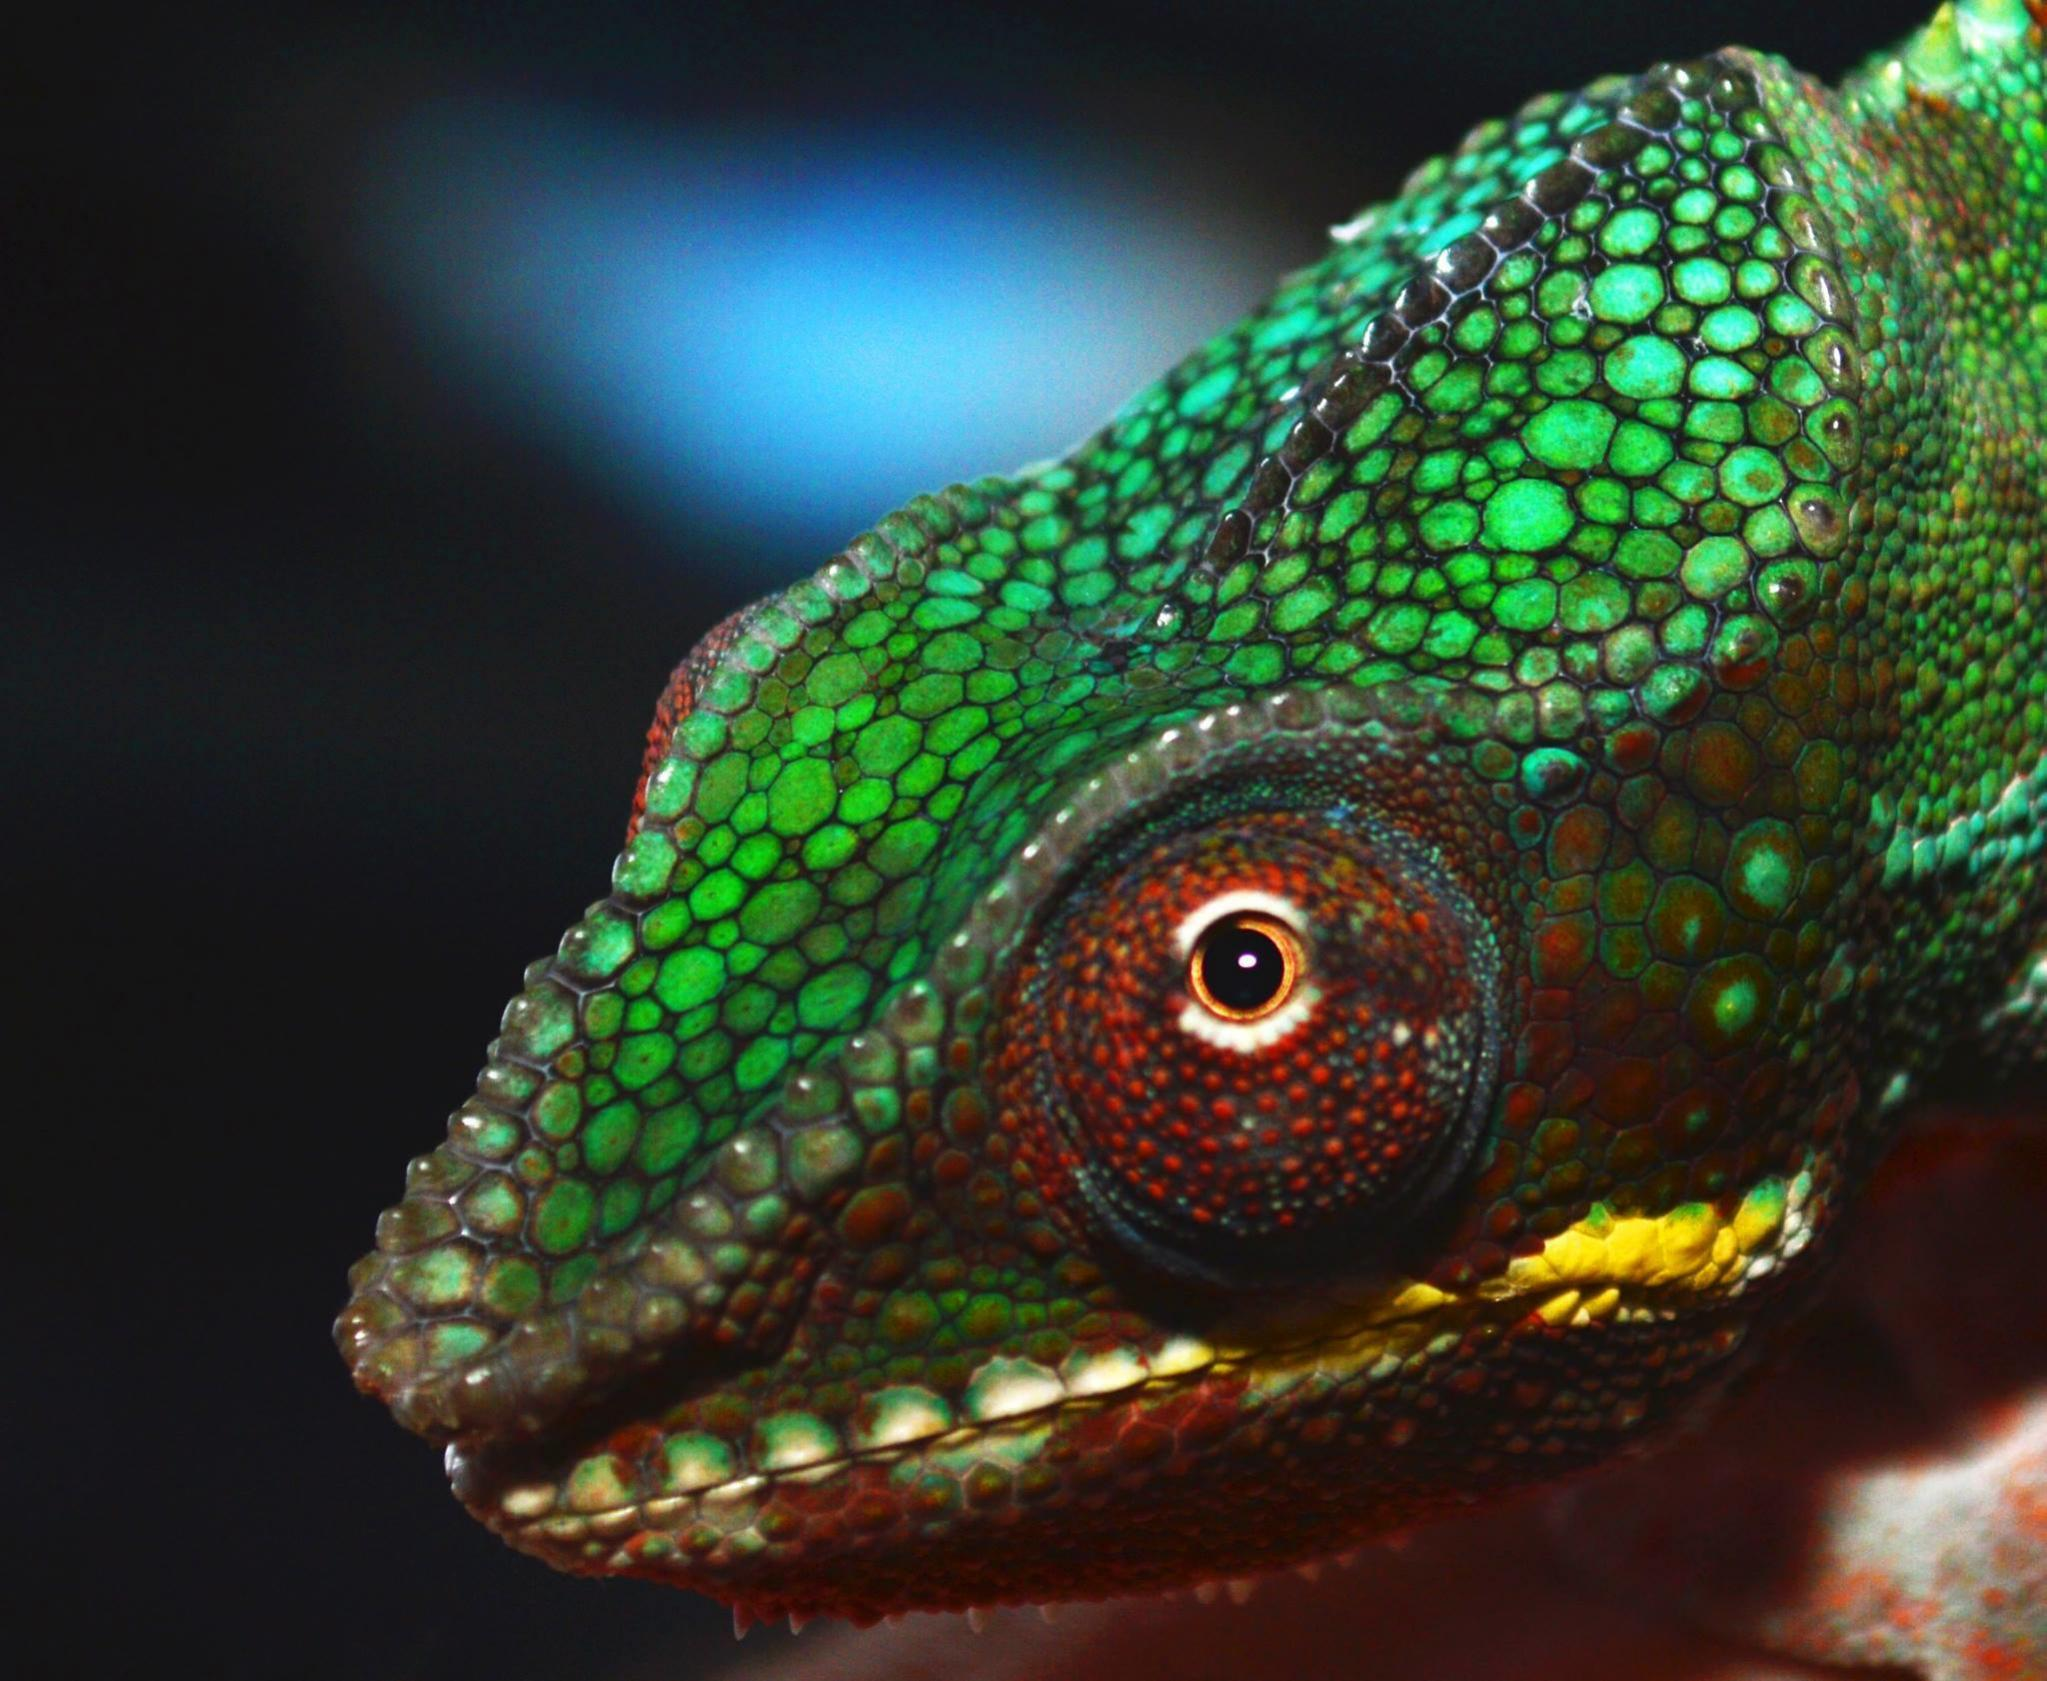 England baby panther chameleons for sale manchester reptile forums